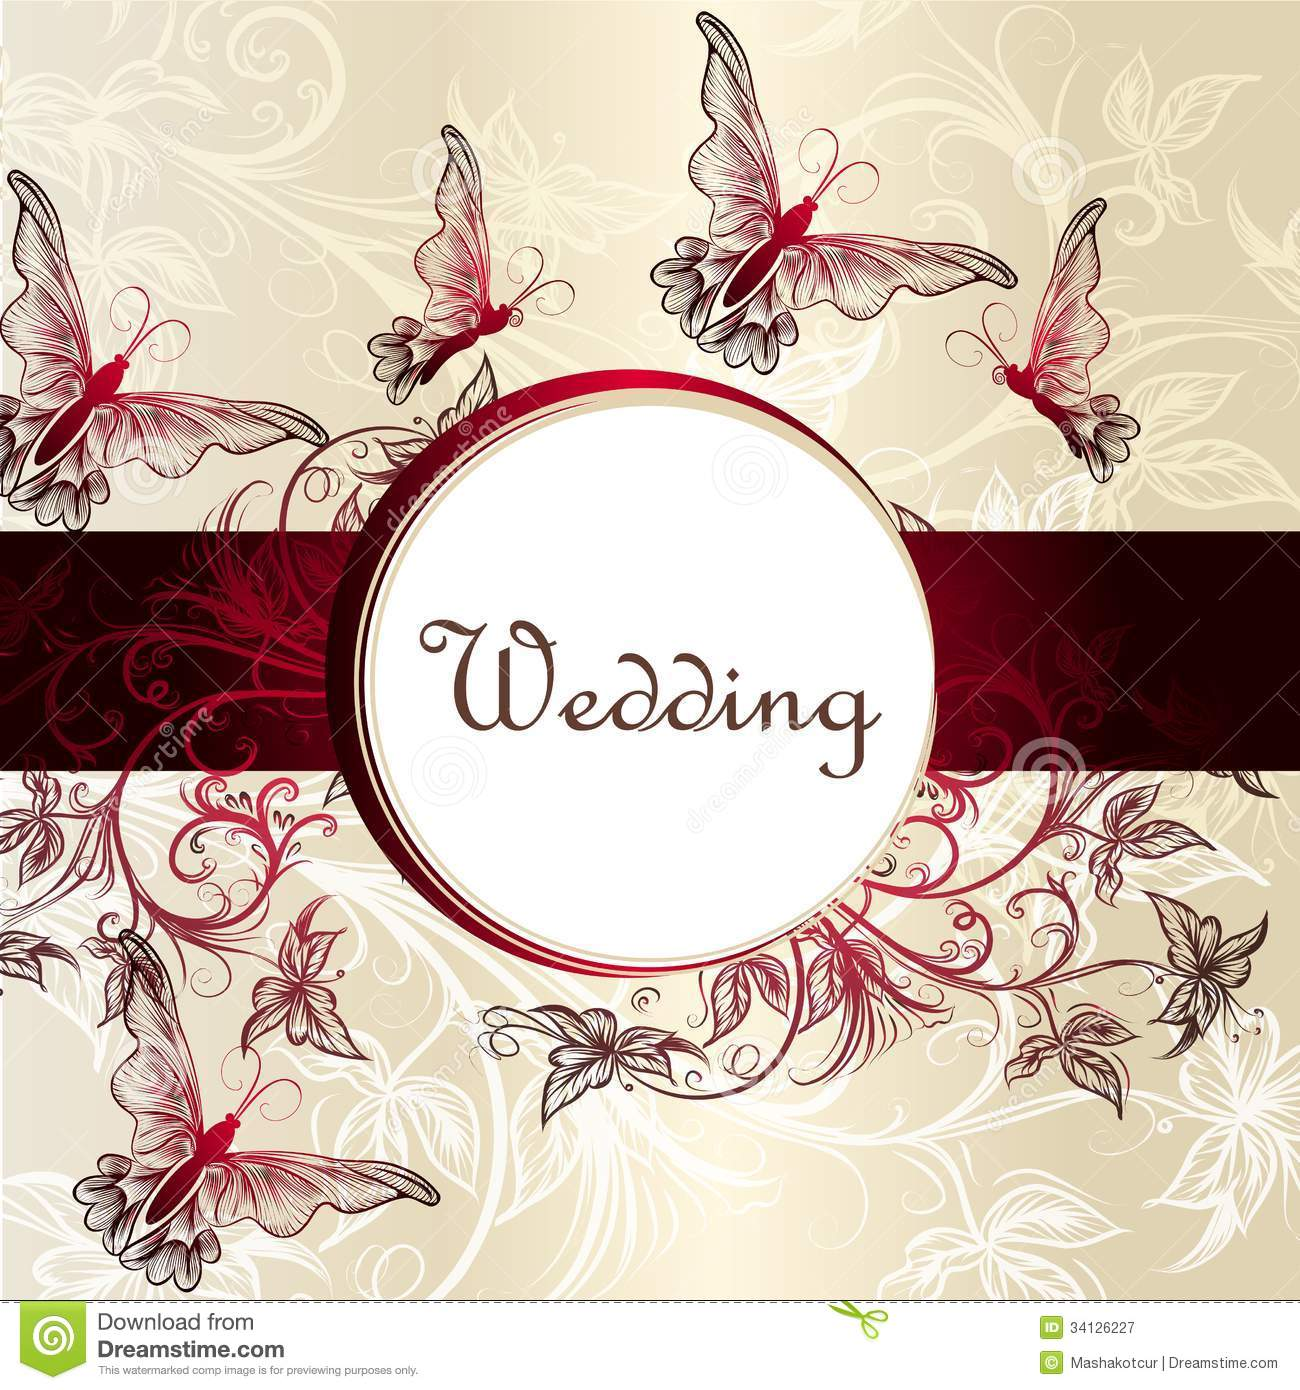 Wedding invitation vector illustration vector free download - Royalty Free Stock Photo Download Wedding Invitation Card